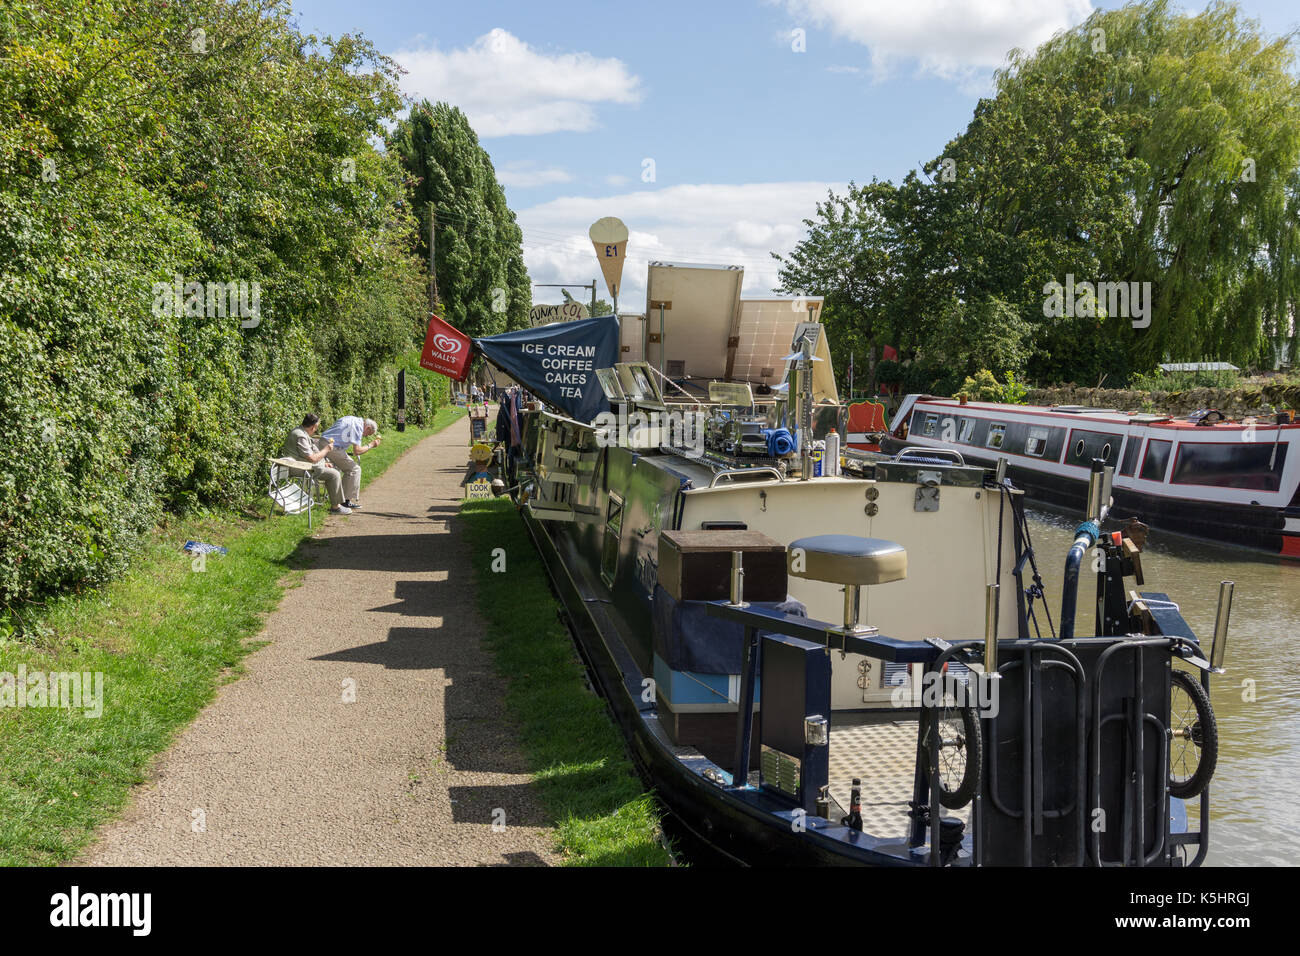 Narrowboat fitted out to sell teas and coffees on the canal at Stoke Bruerne Northamptonshire, UK - Stock Image